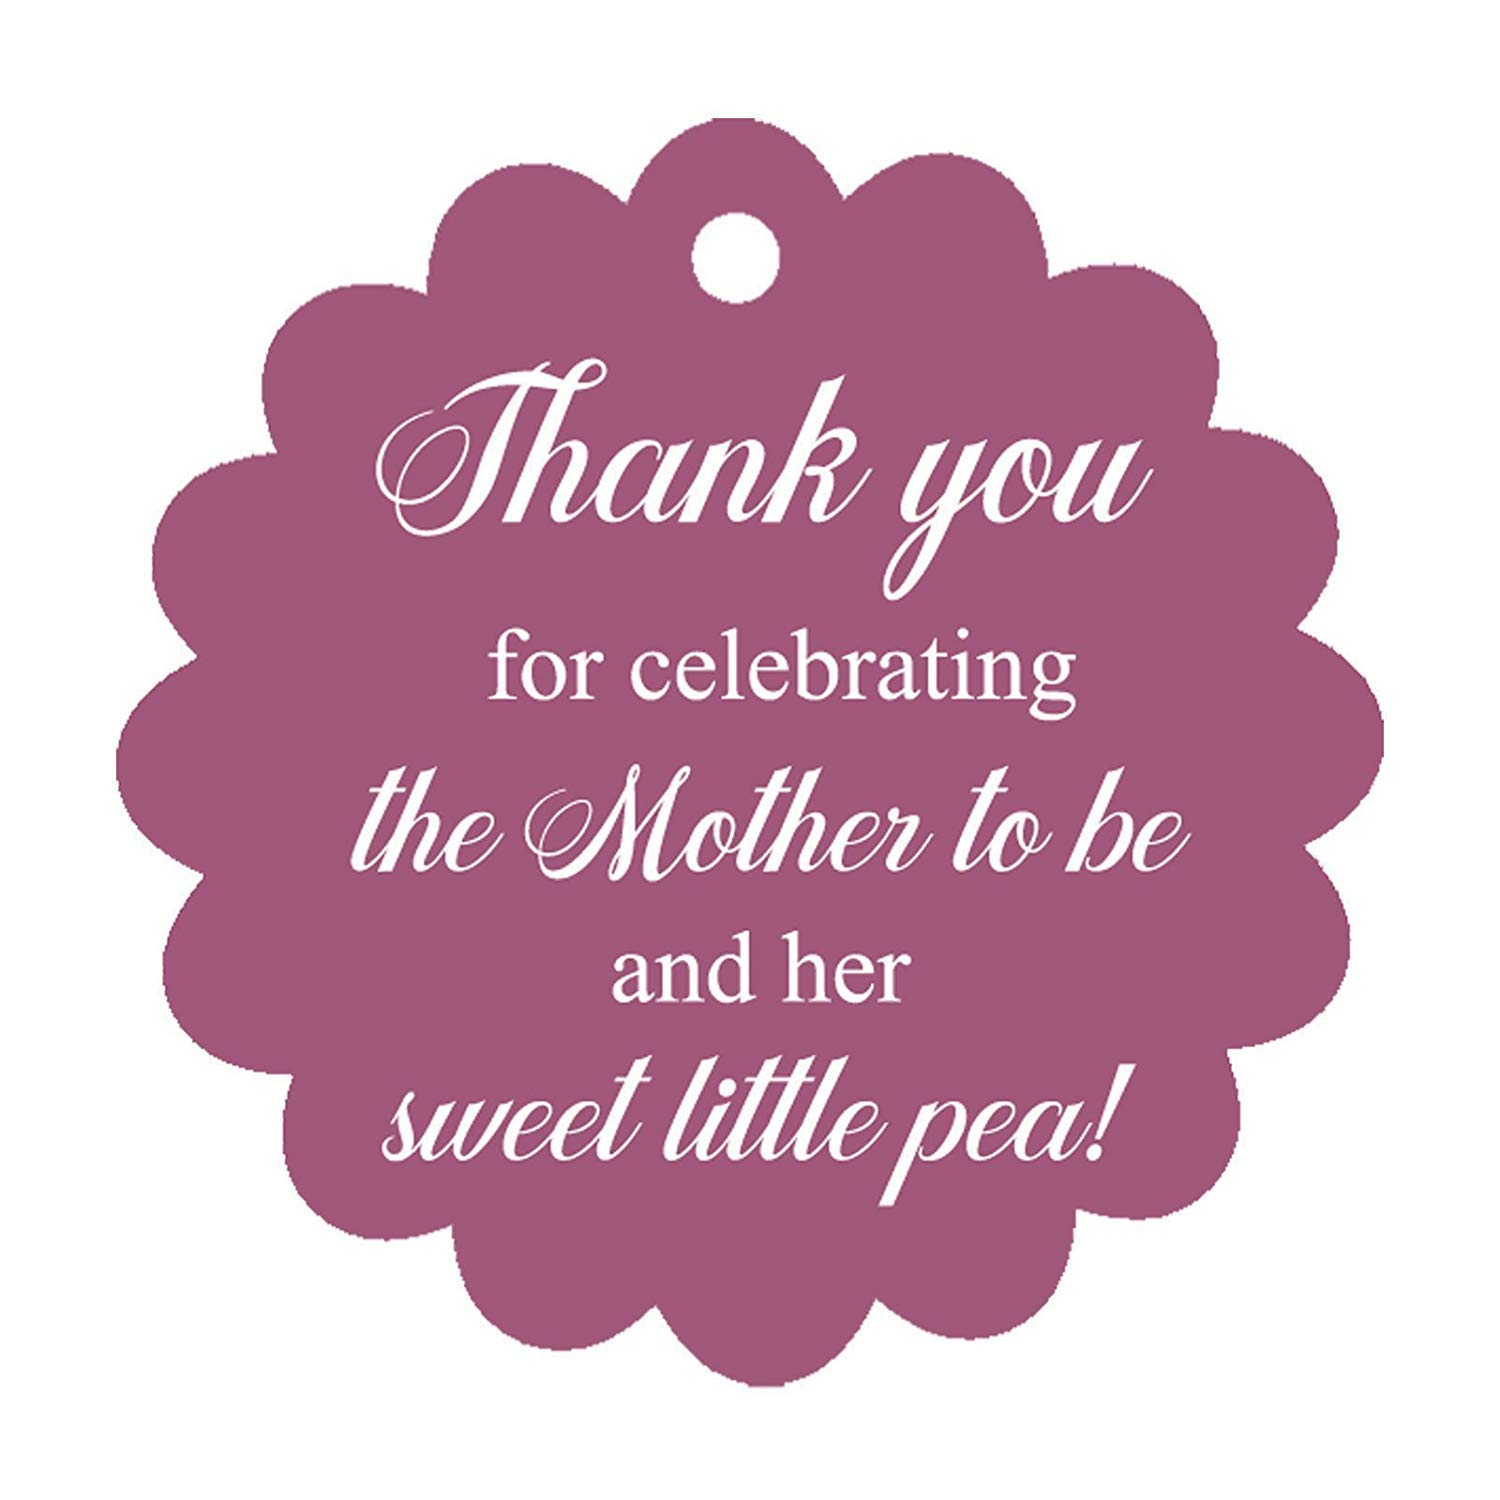 100 PCS Baby Shower Favors Gift Paper Hang Tags /Thank You For Celebrating The Mother To Be /& Her Sweet Little Pea!